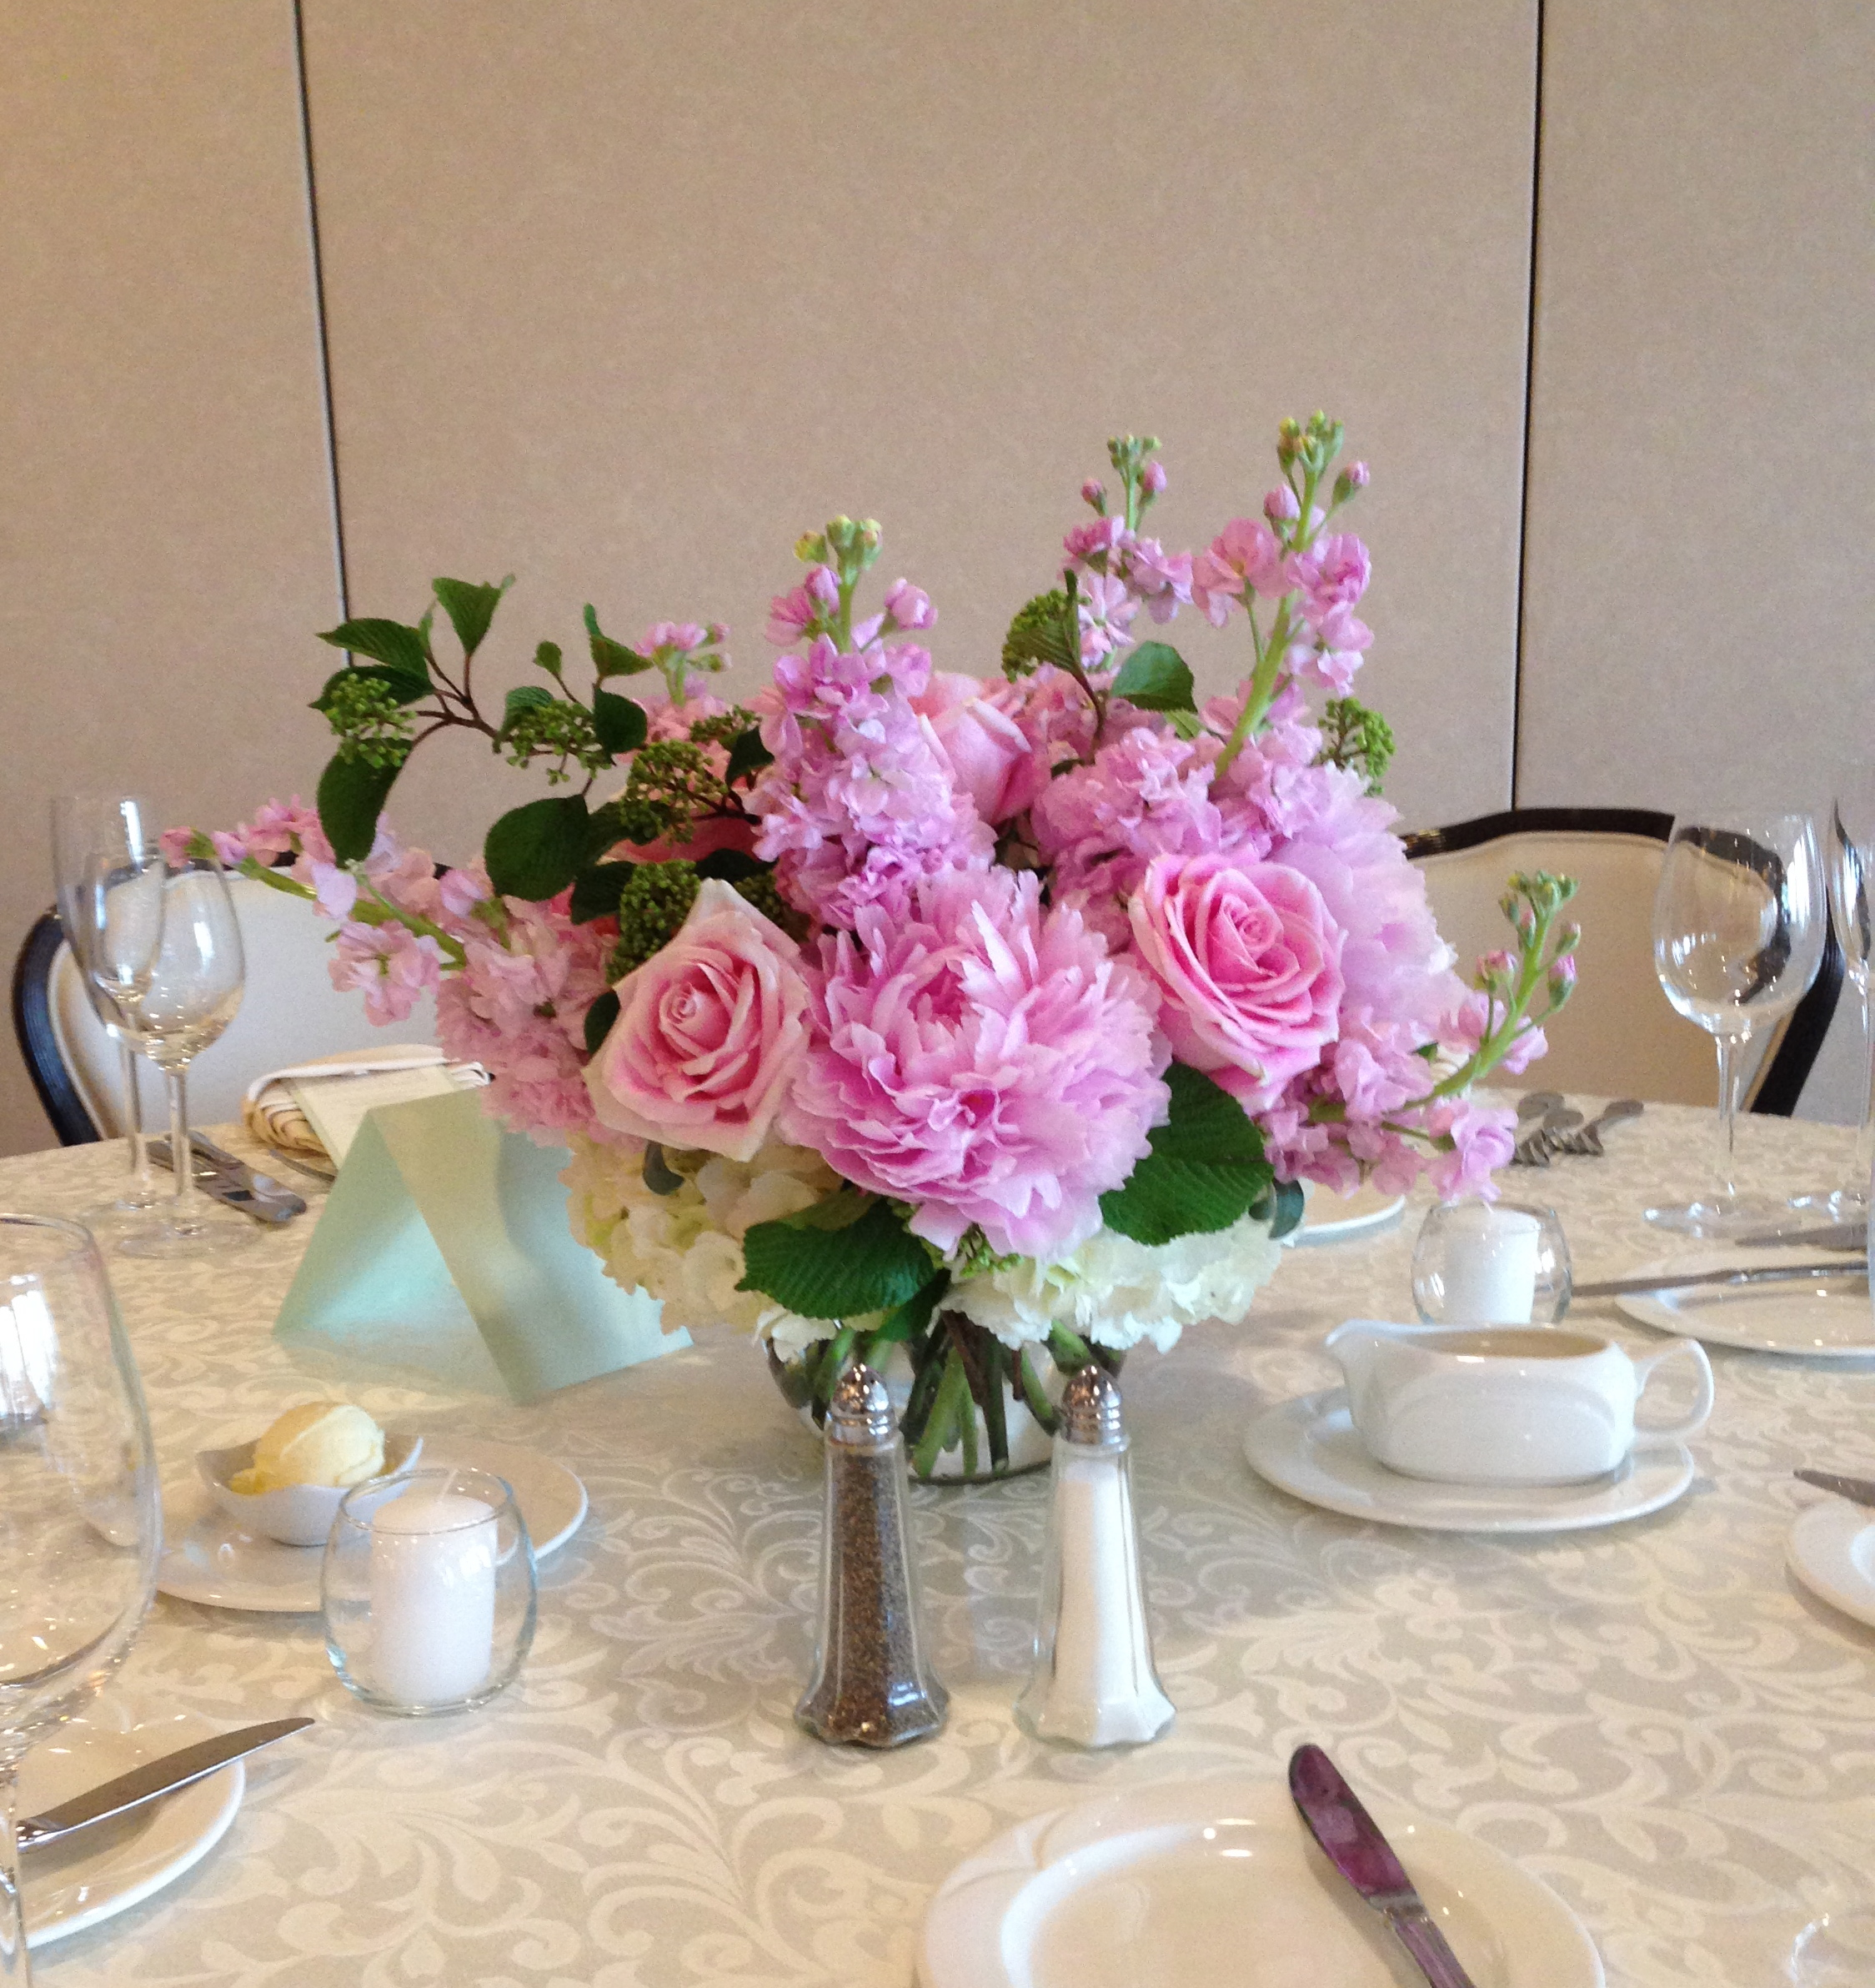 Blog - Floral Affair - Guilford, CT Mary Voigt